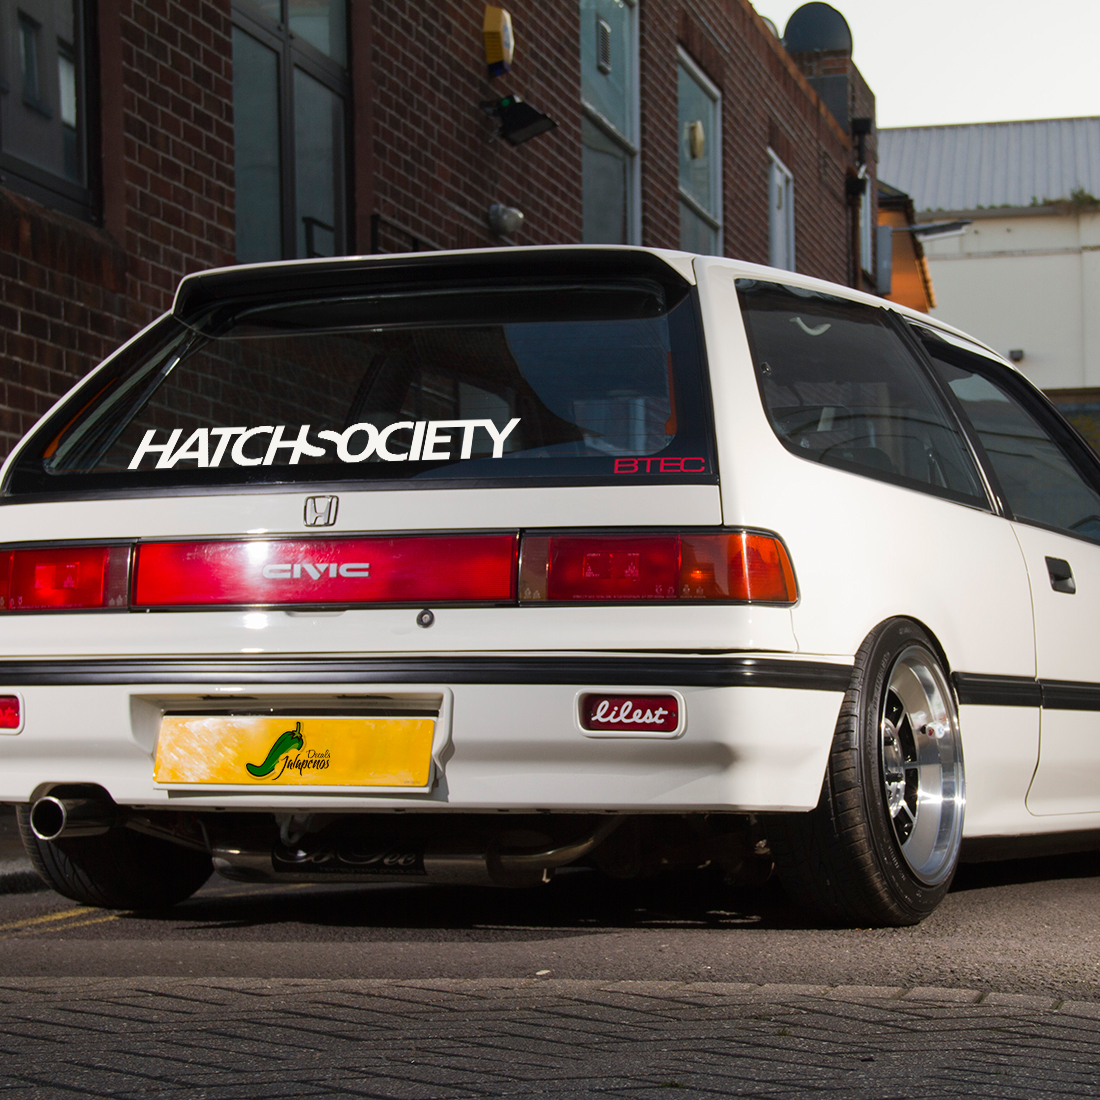 Hatch Society v3 Hatchback Honda Civic Banner Drift Racing Low Stance Slammed JDM Windshield Car Vinyl Sticker Decal